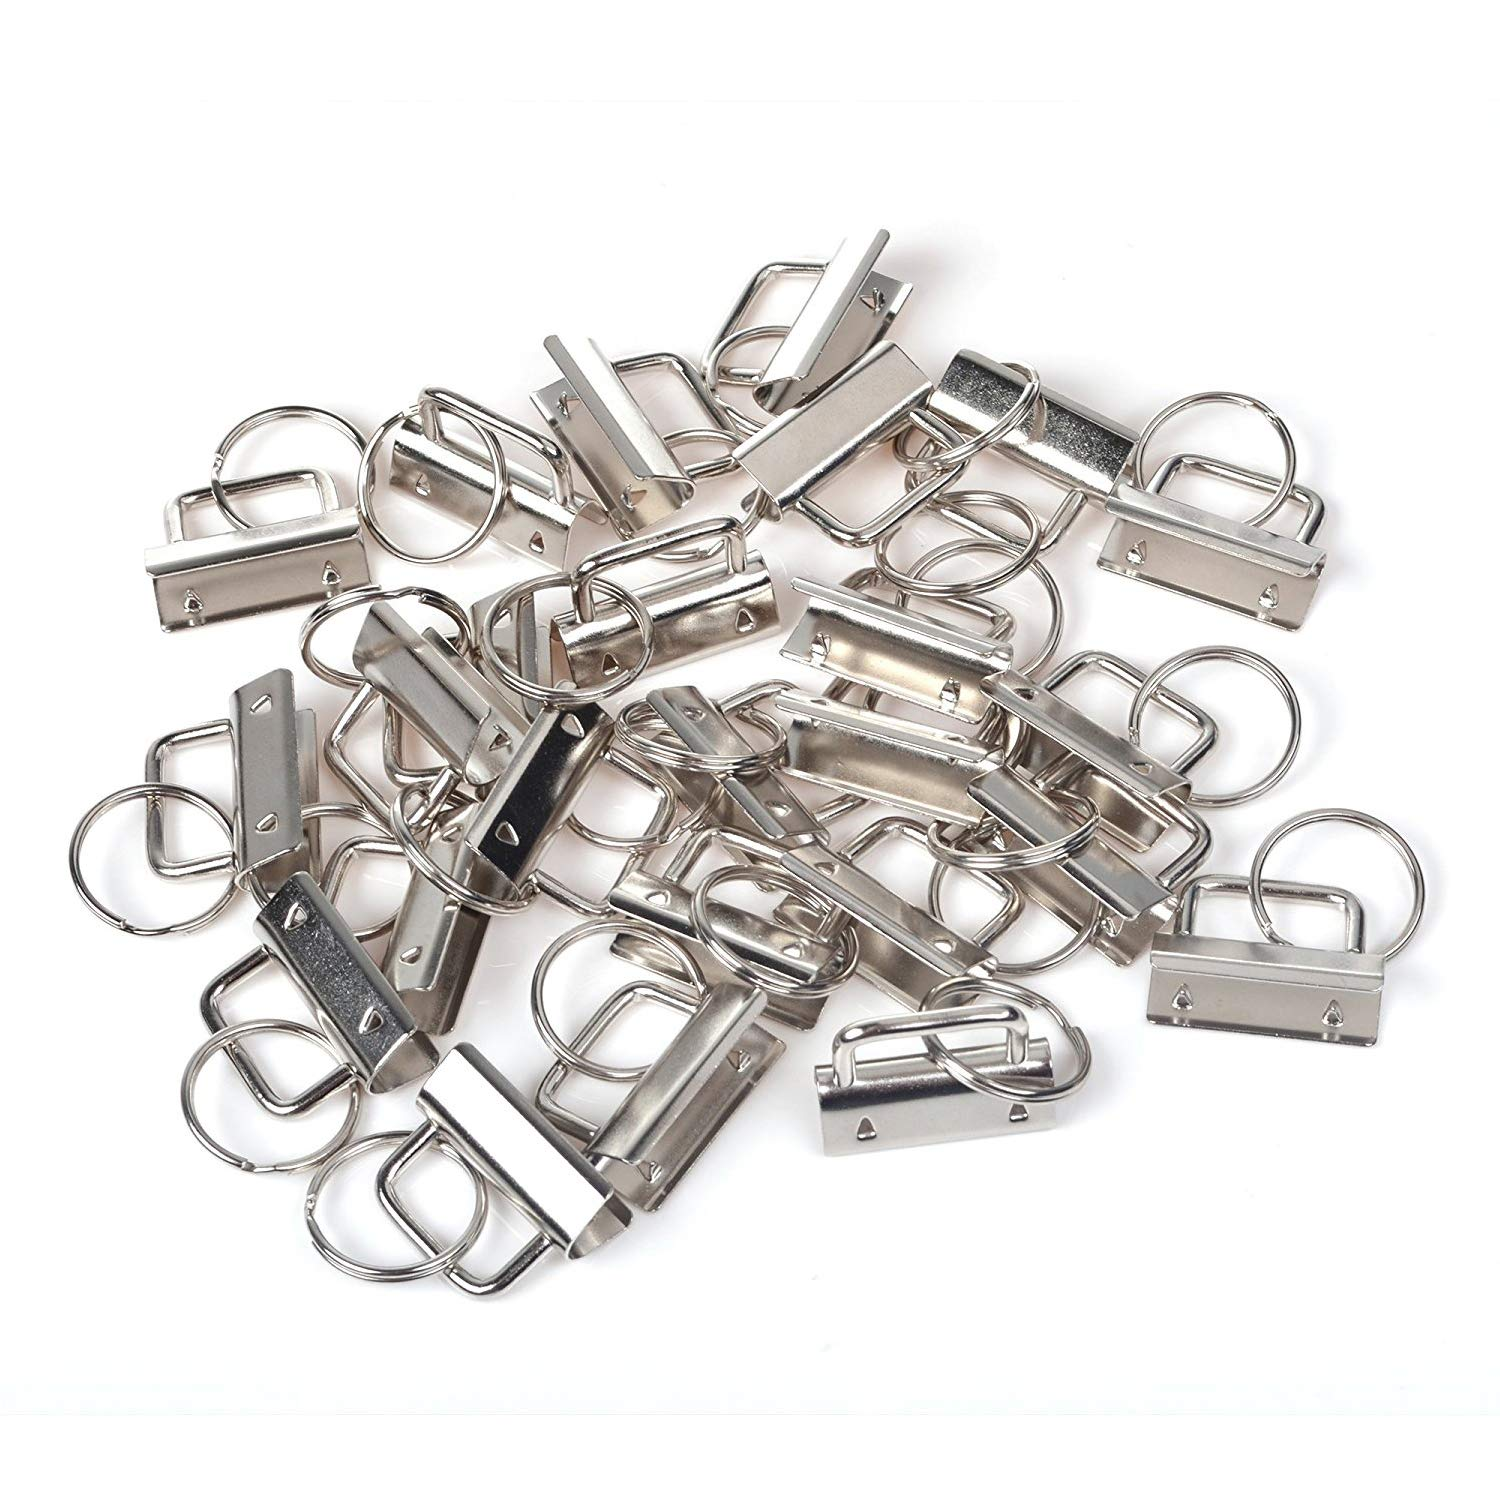 48PCS 925 Sterling Silver Head Pins Finding for DIY Crafting Jewelry Making 30mmx0.5mm